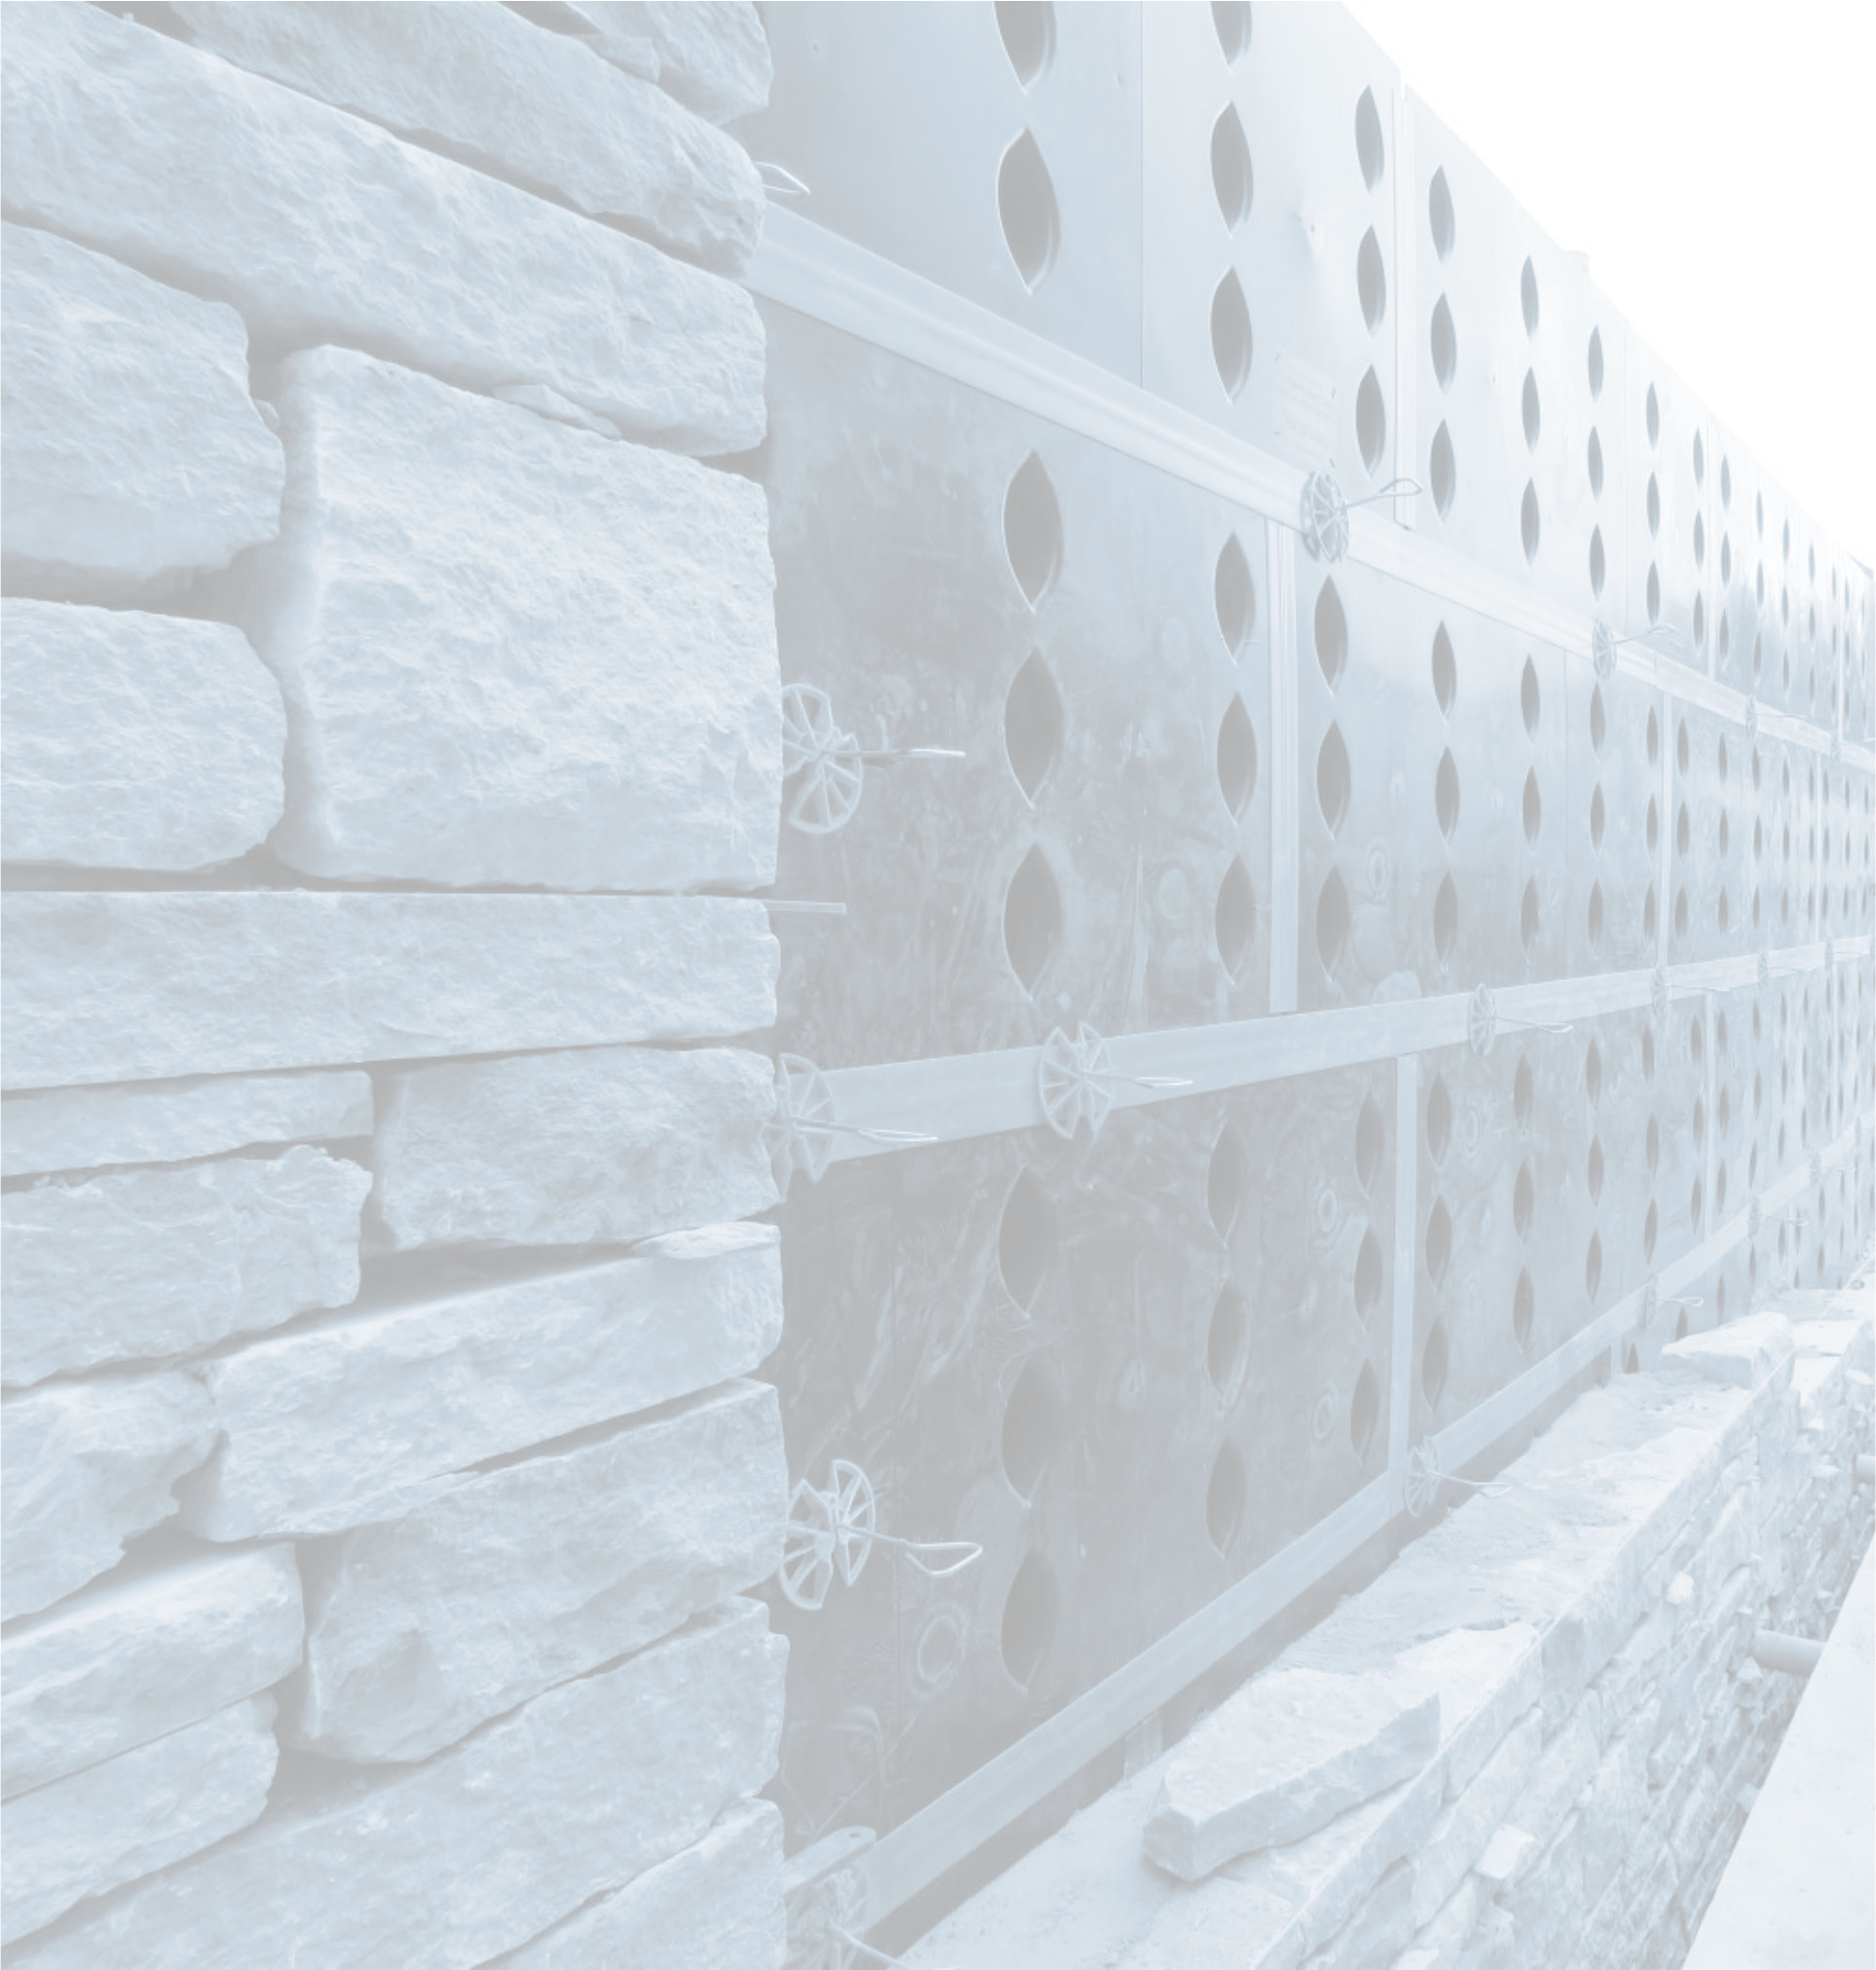 Eco-friendly, space saving, cost-effective cavity-wall technology!